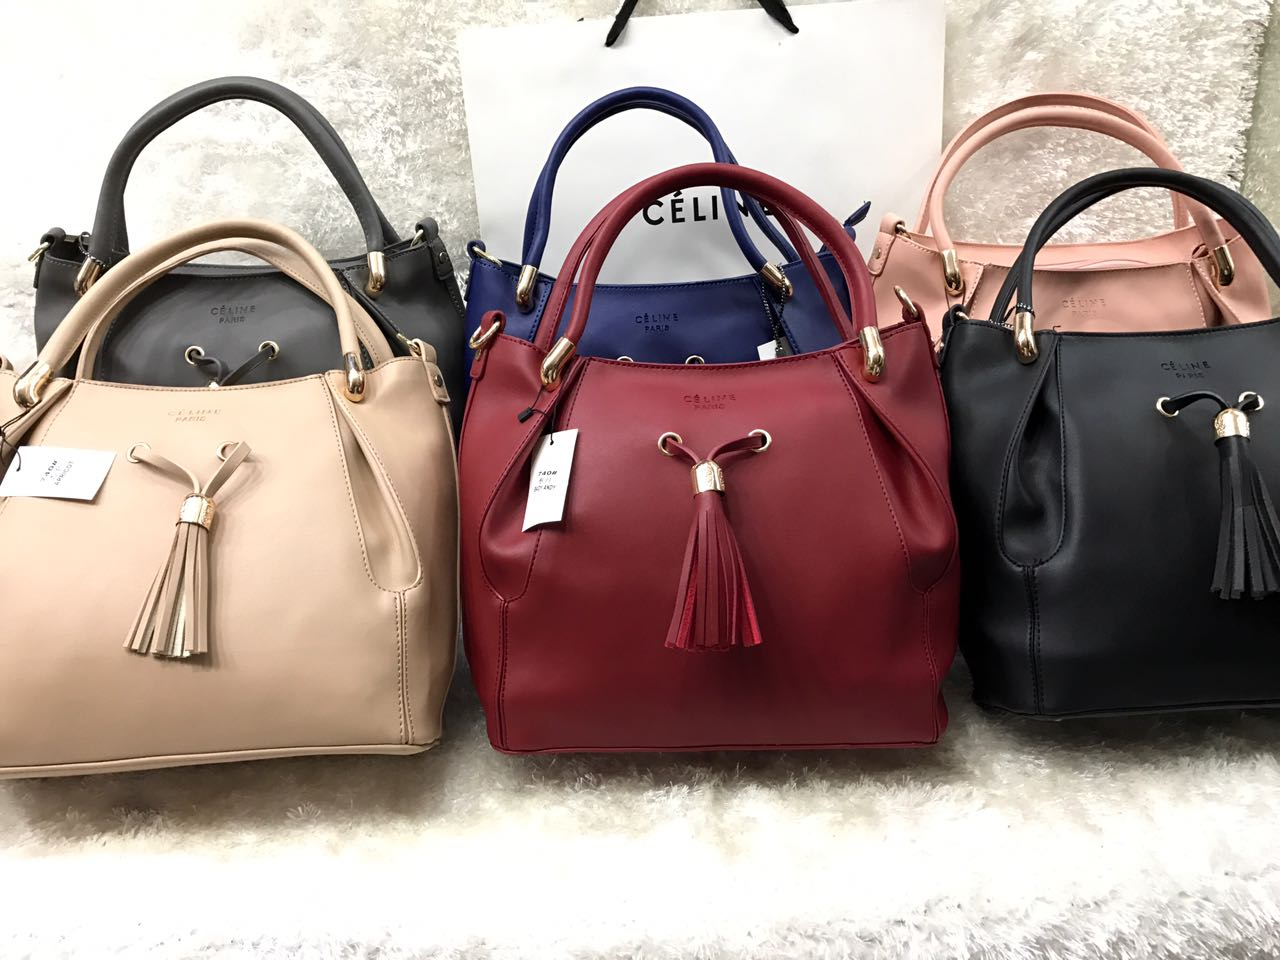 d9c5379601d7 CÉLINE Paris 3 In 1 Handbag Set For Women Baby Beige Price In Pakistan